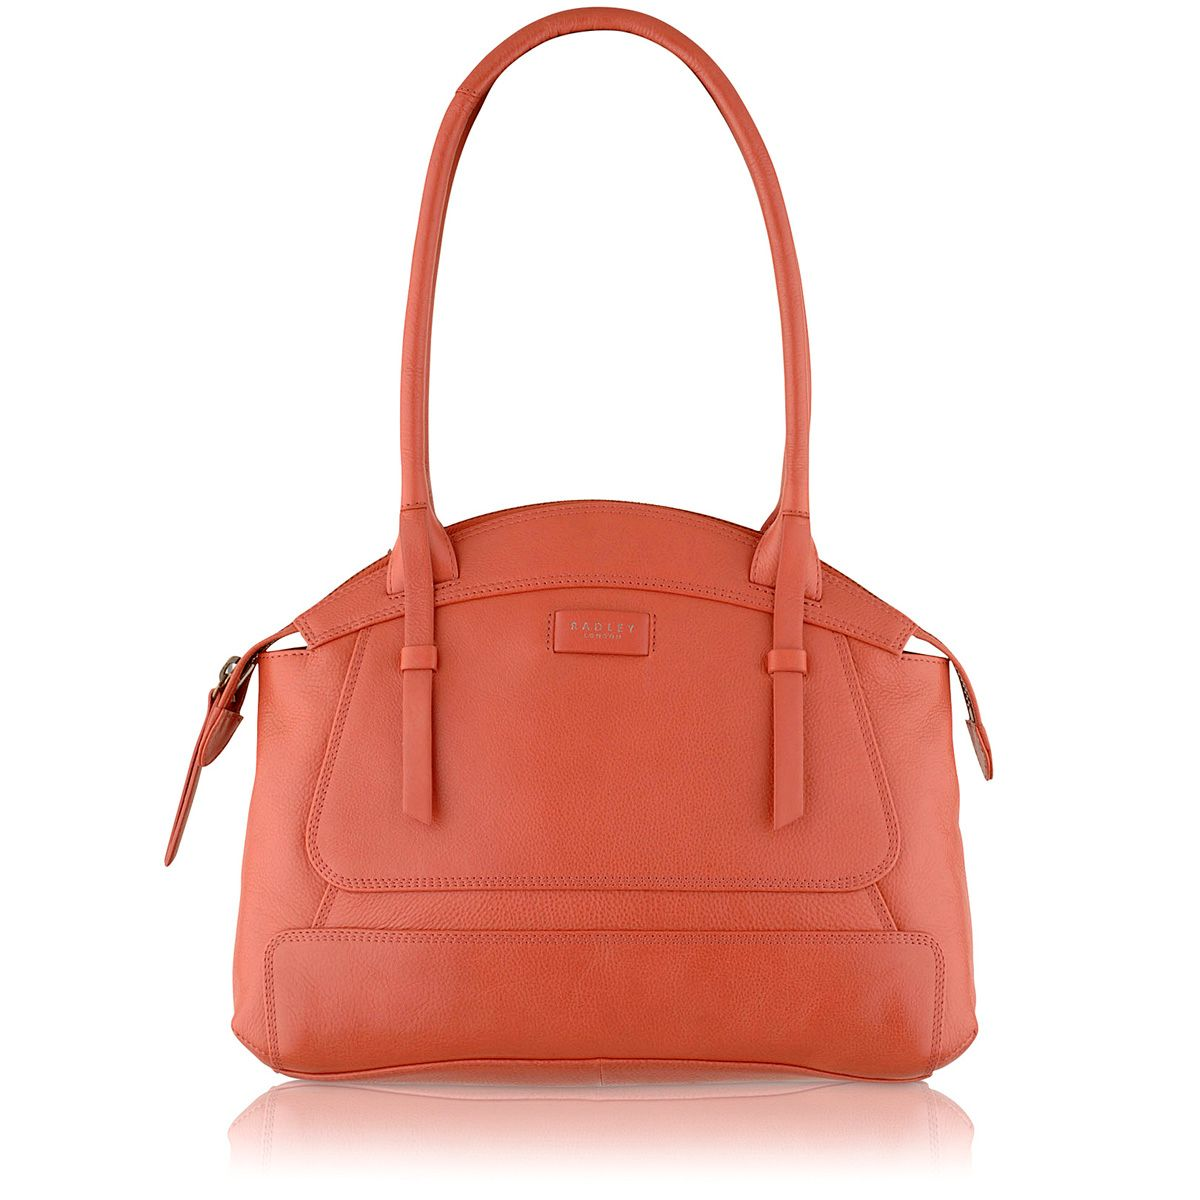 Clayton pink medium leather tote bag